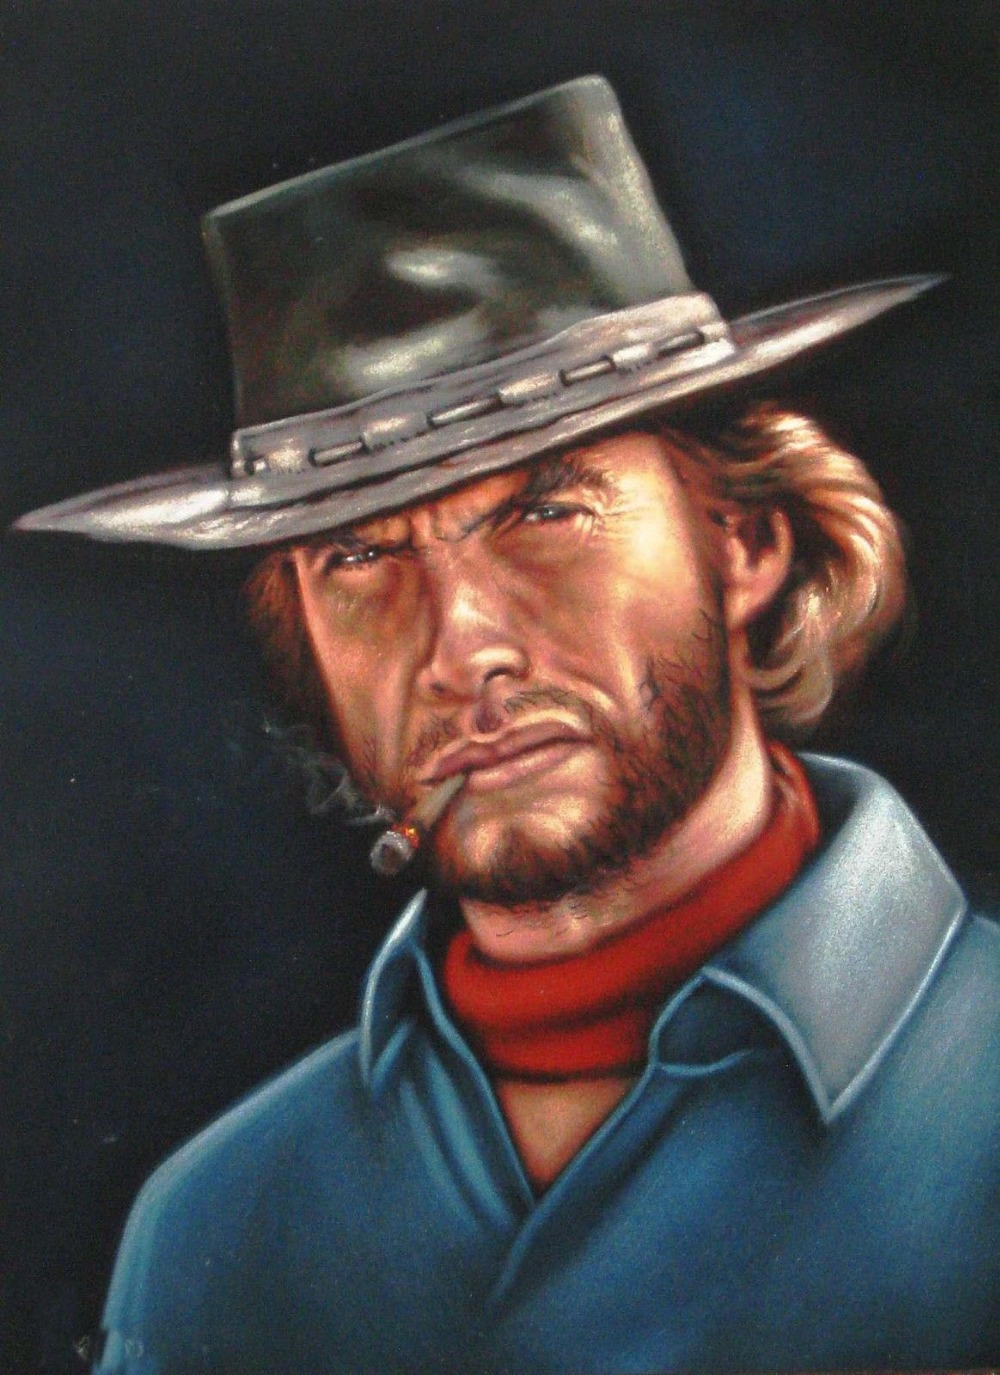 2015 top COOL oil painting- cowboy Clint Eastwood Spaghetti <b>Western ART</b> <b>...</b> - 2015-top-COOL-oil-painting-font-b-cowboy-b-font-Clint-Eastwood-Spaghetti-font-b-Western